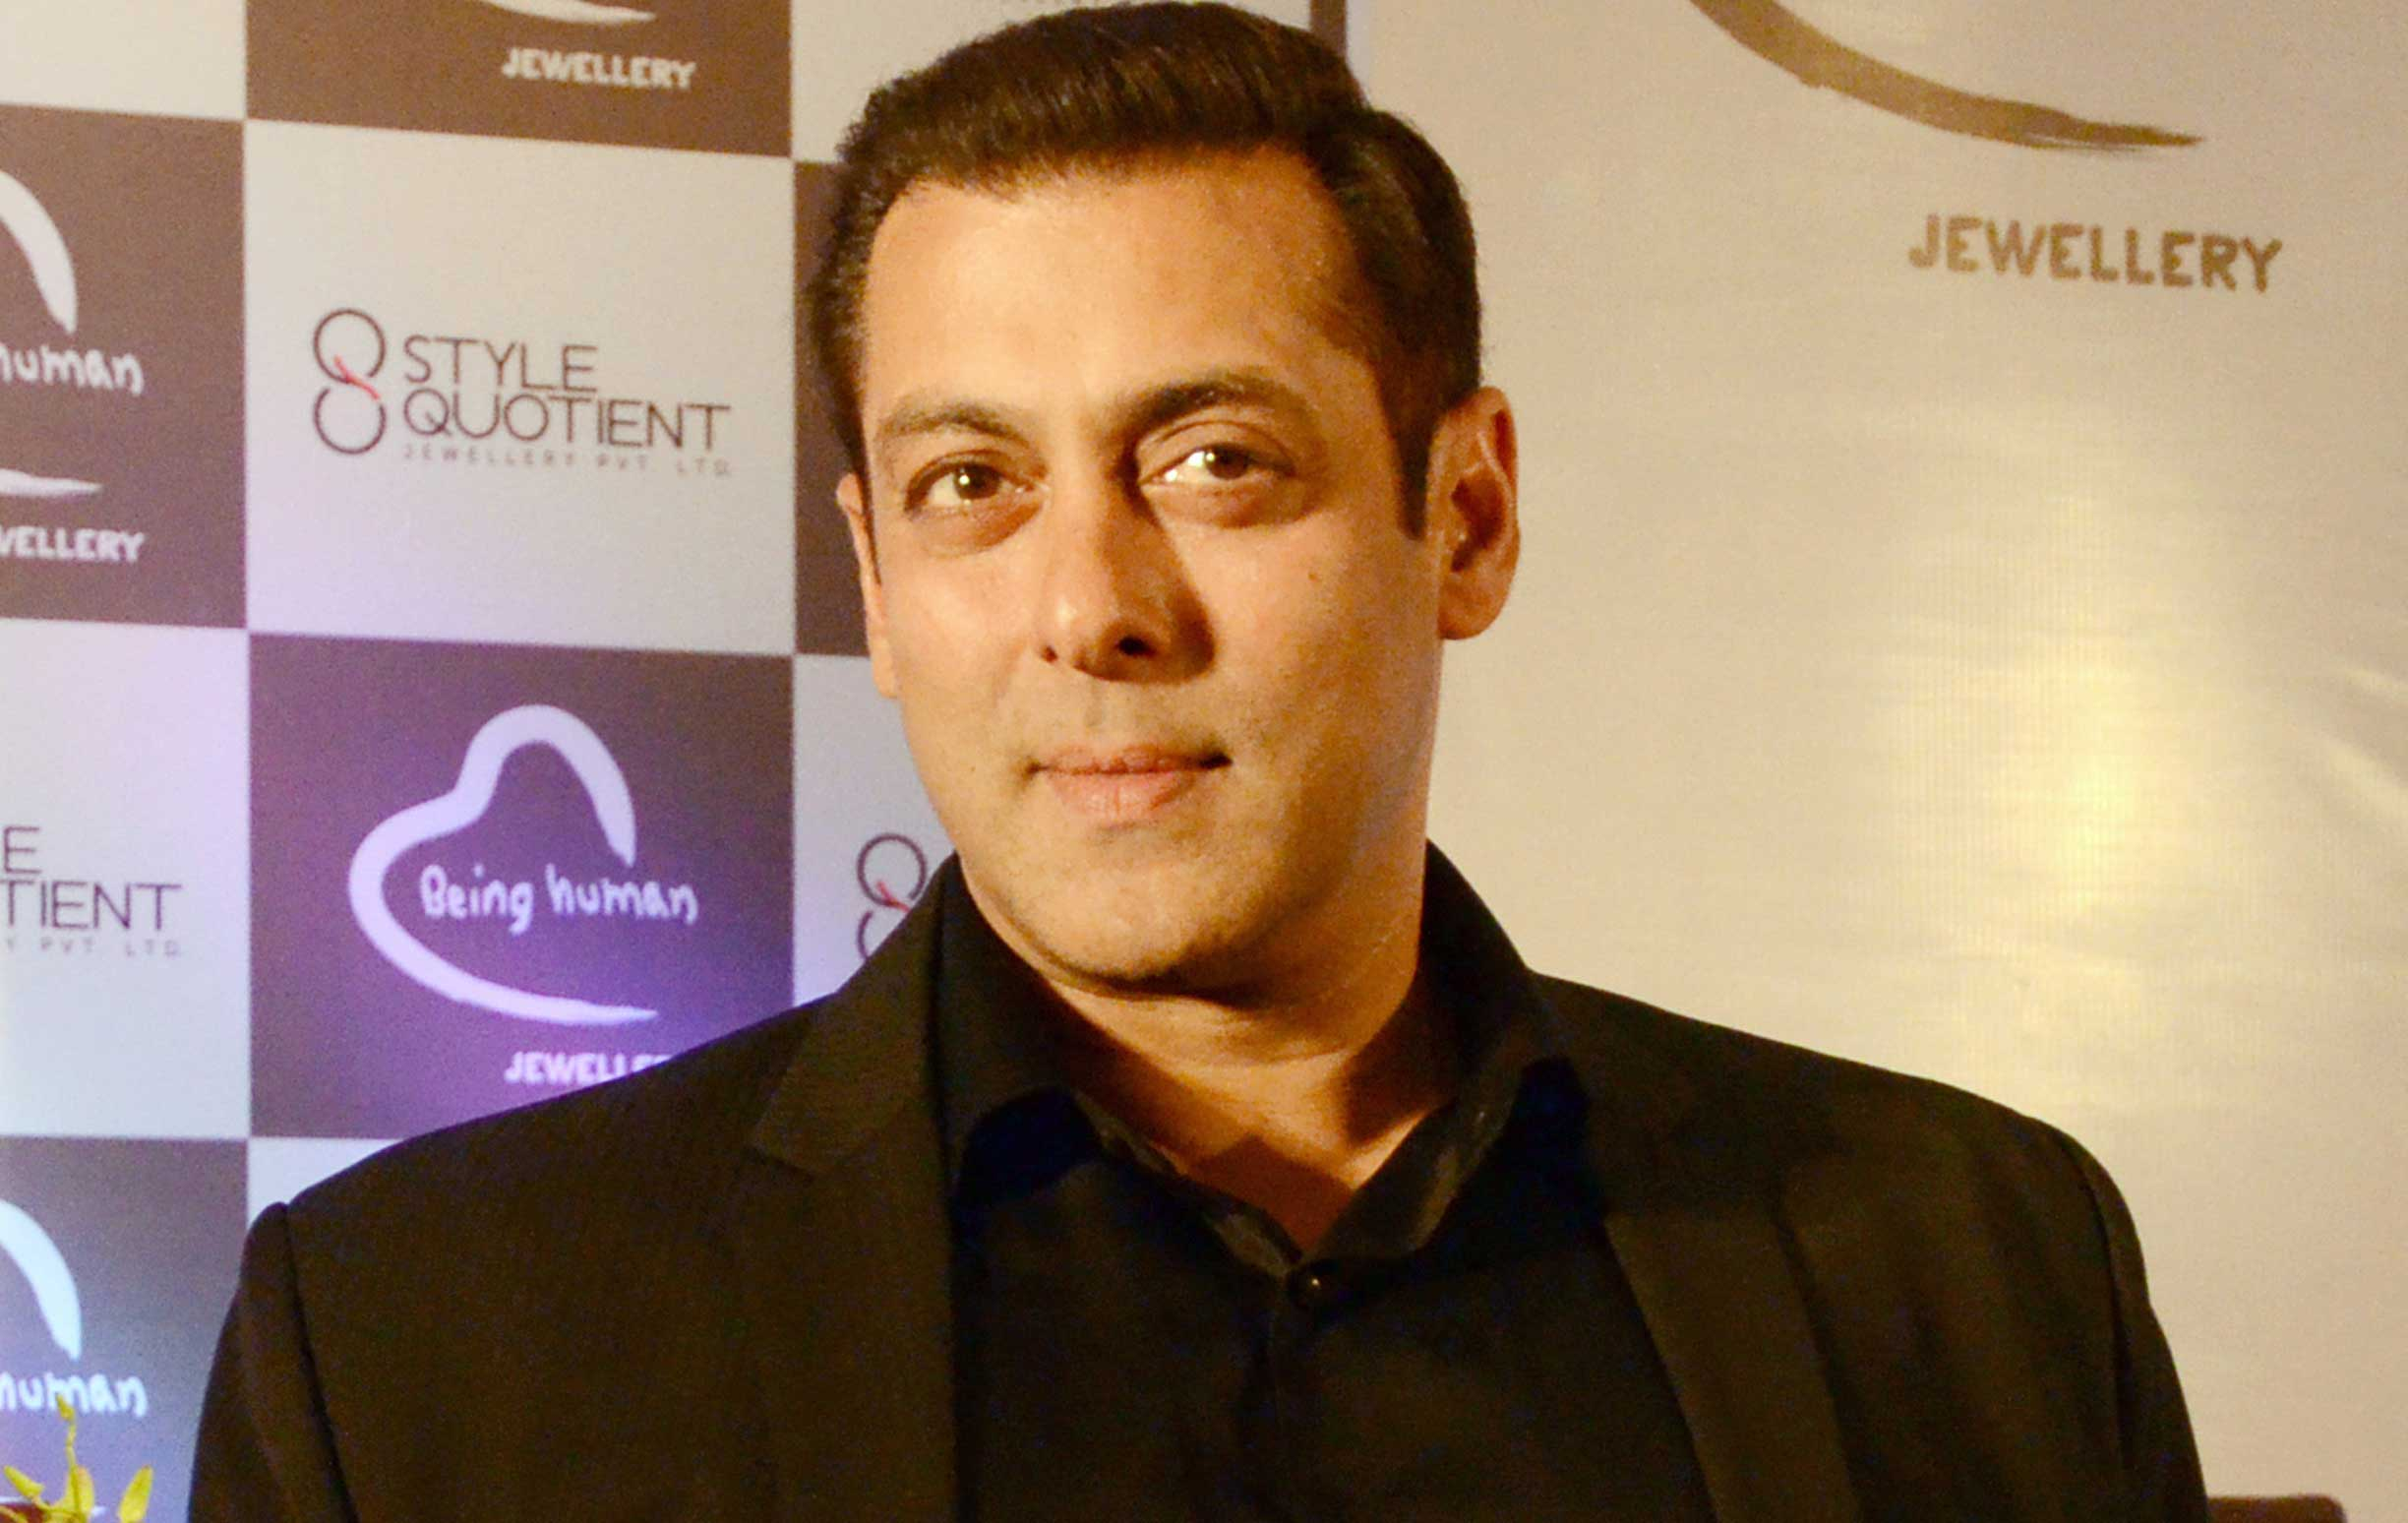 Salman Khan has confirmed his participation in the second phase of the inaugural function to be held in Cuttack on November 28.